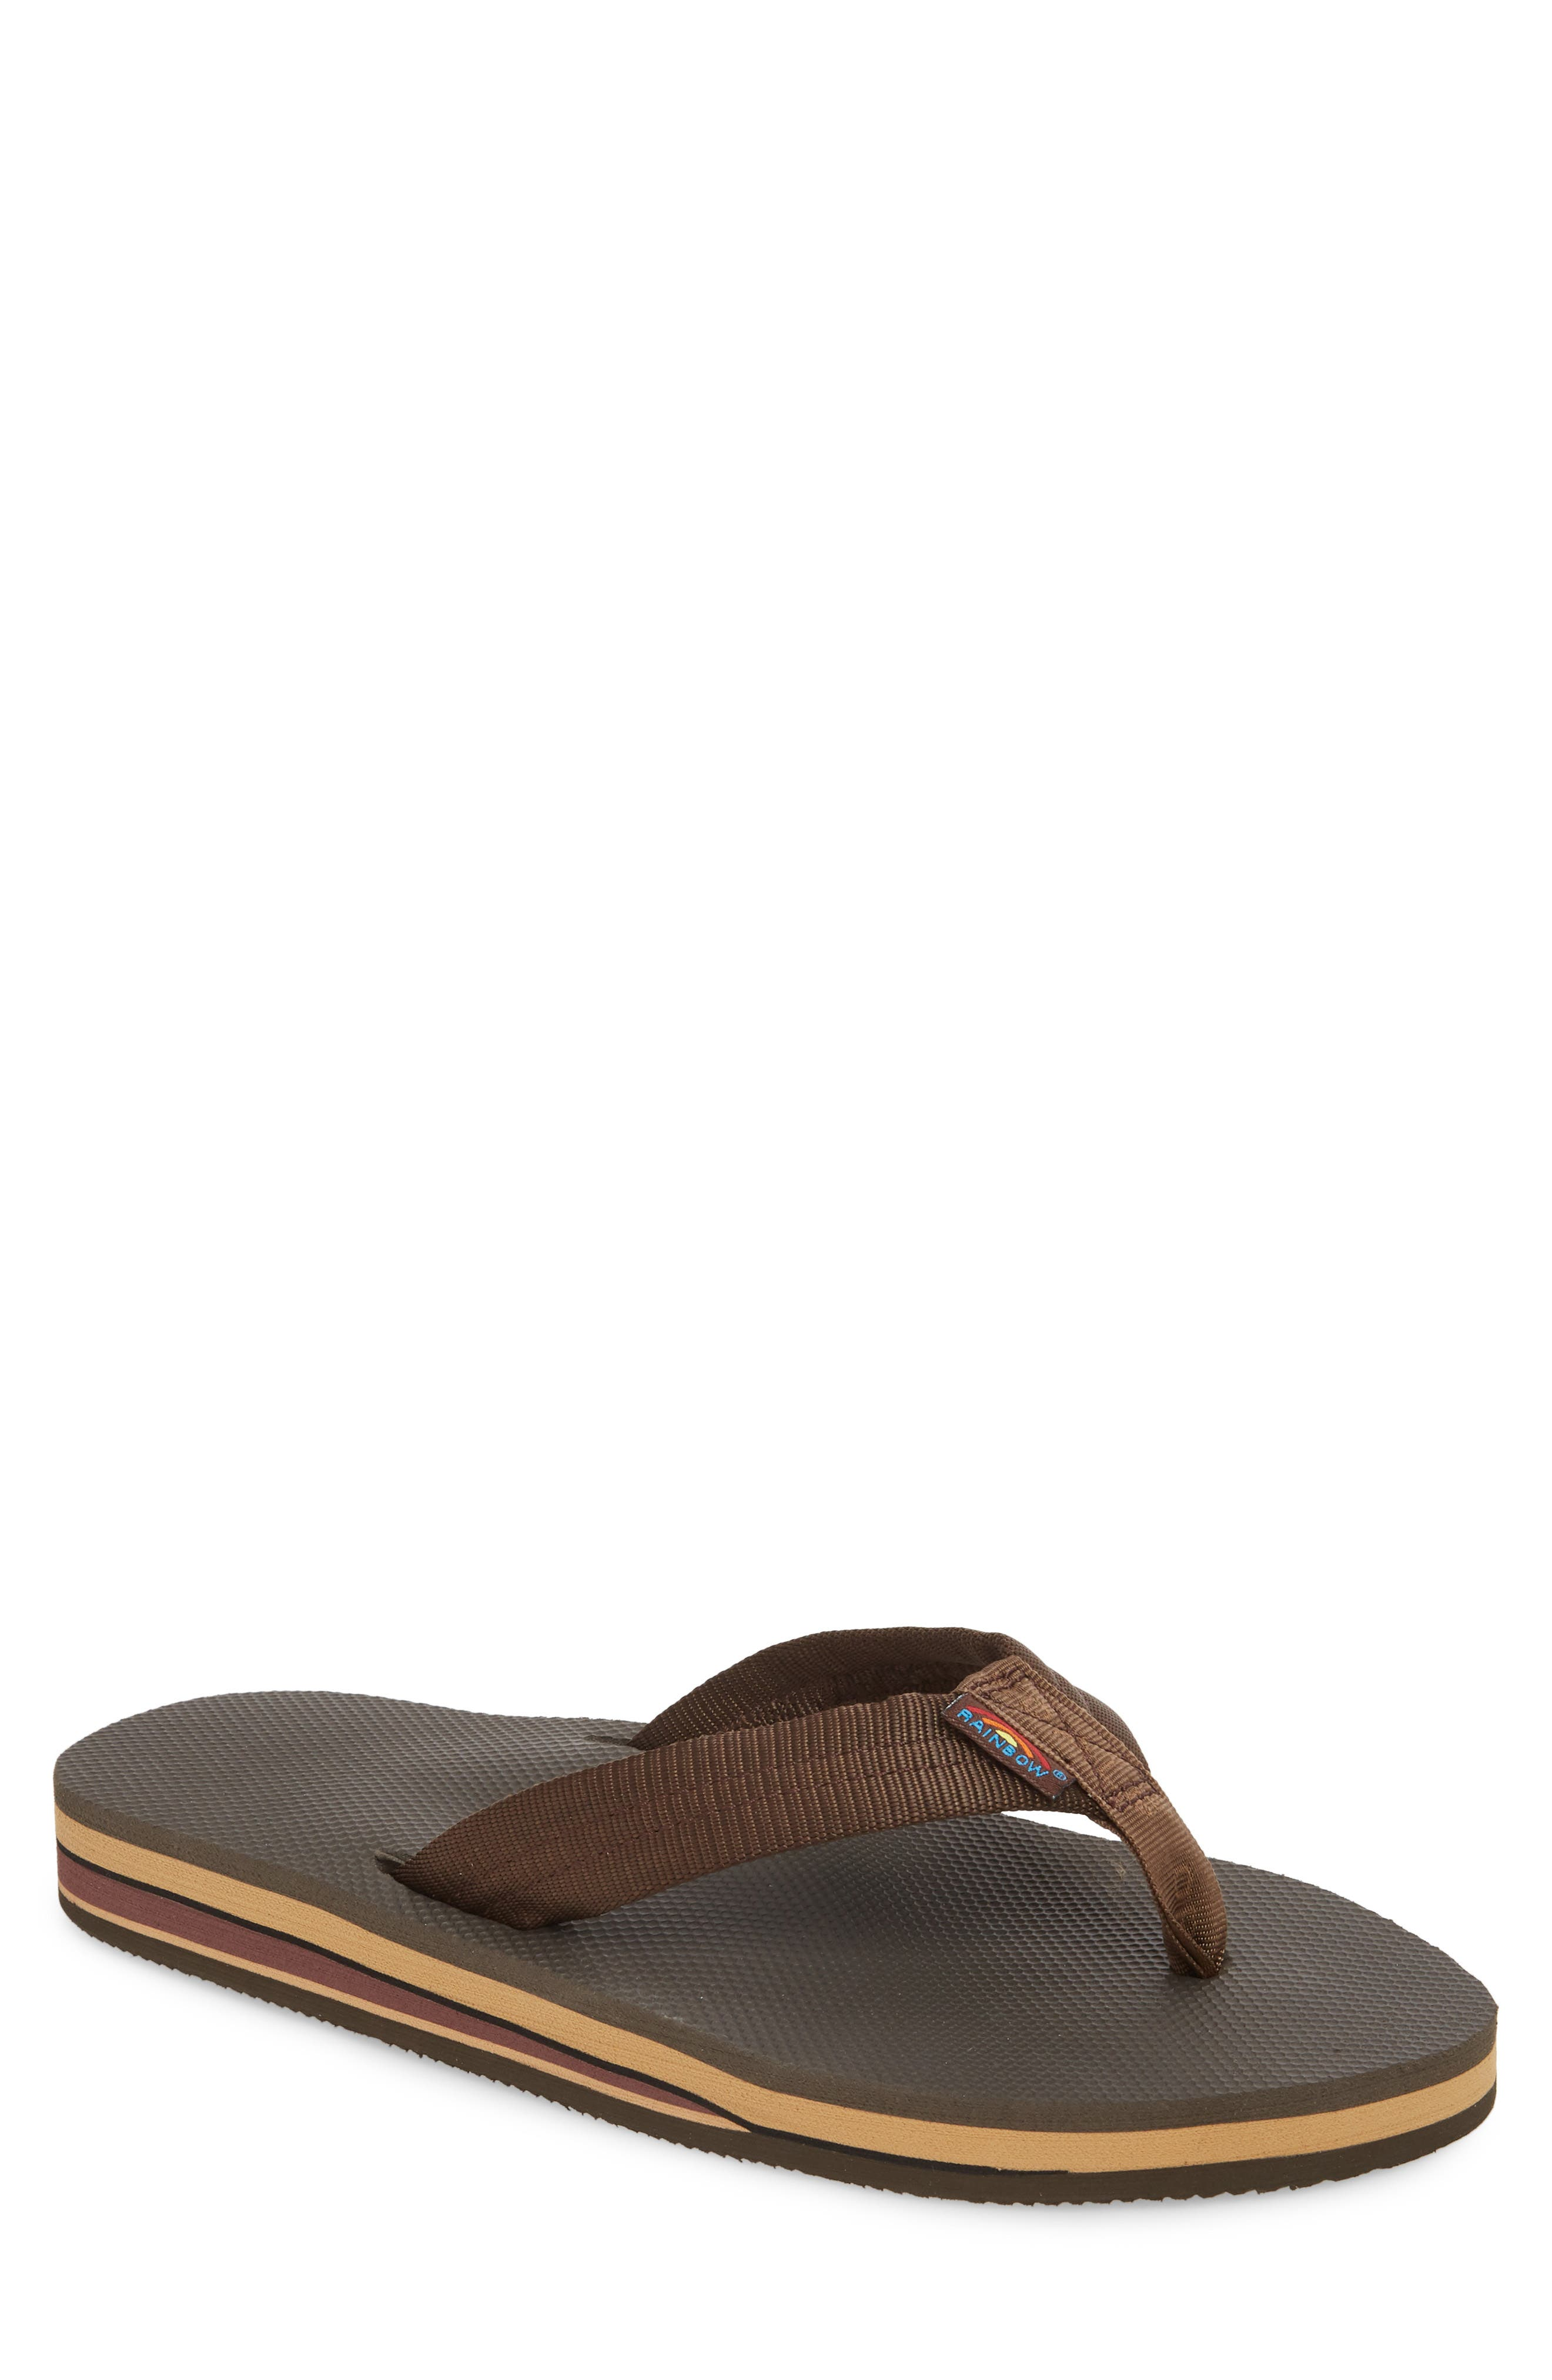 RAINBOW<SUP>®</SUP> Rainbow Double Layer Classic Flip Flop, Main, color, 207